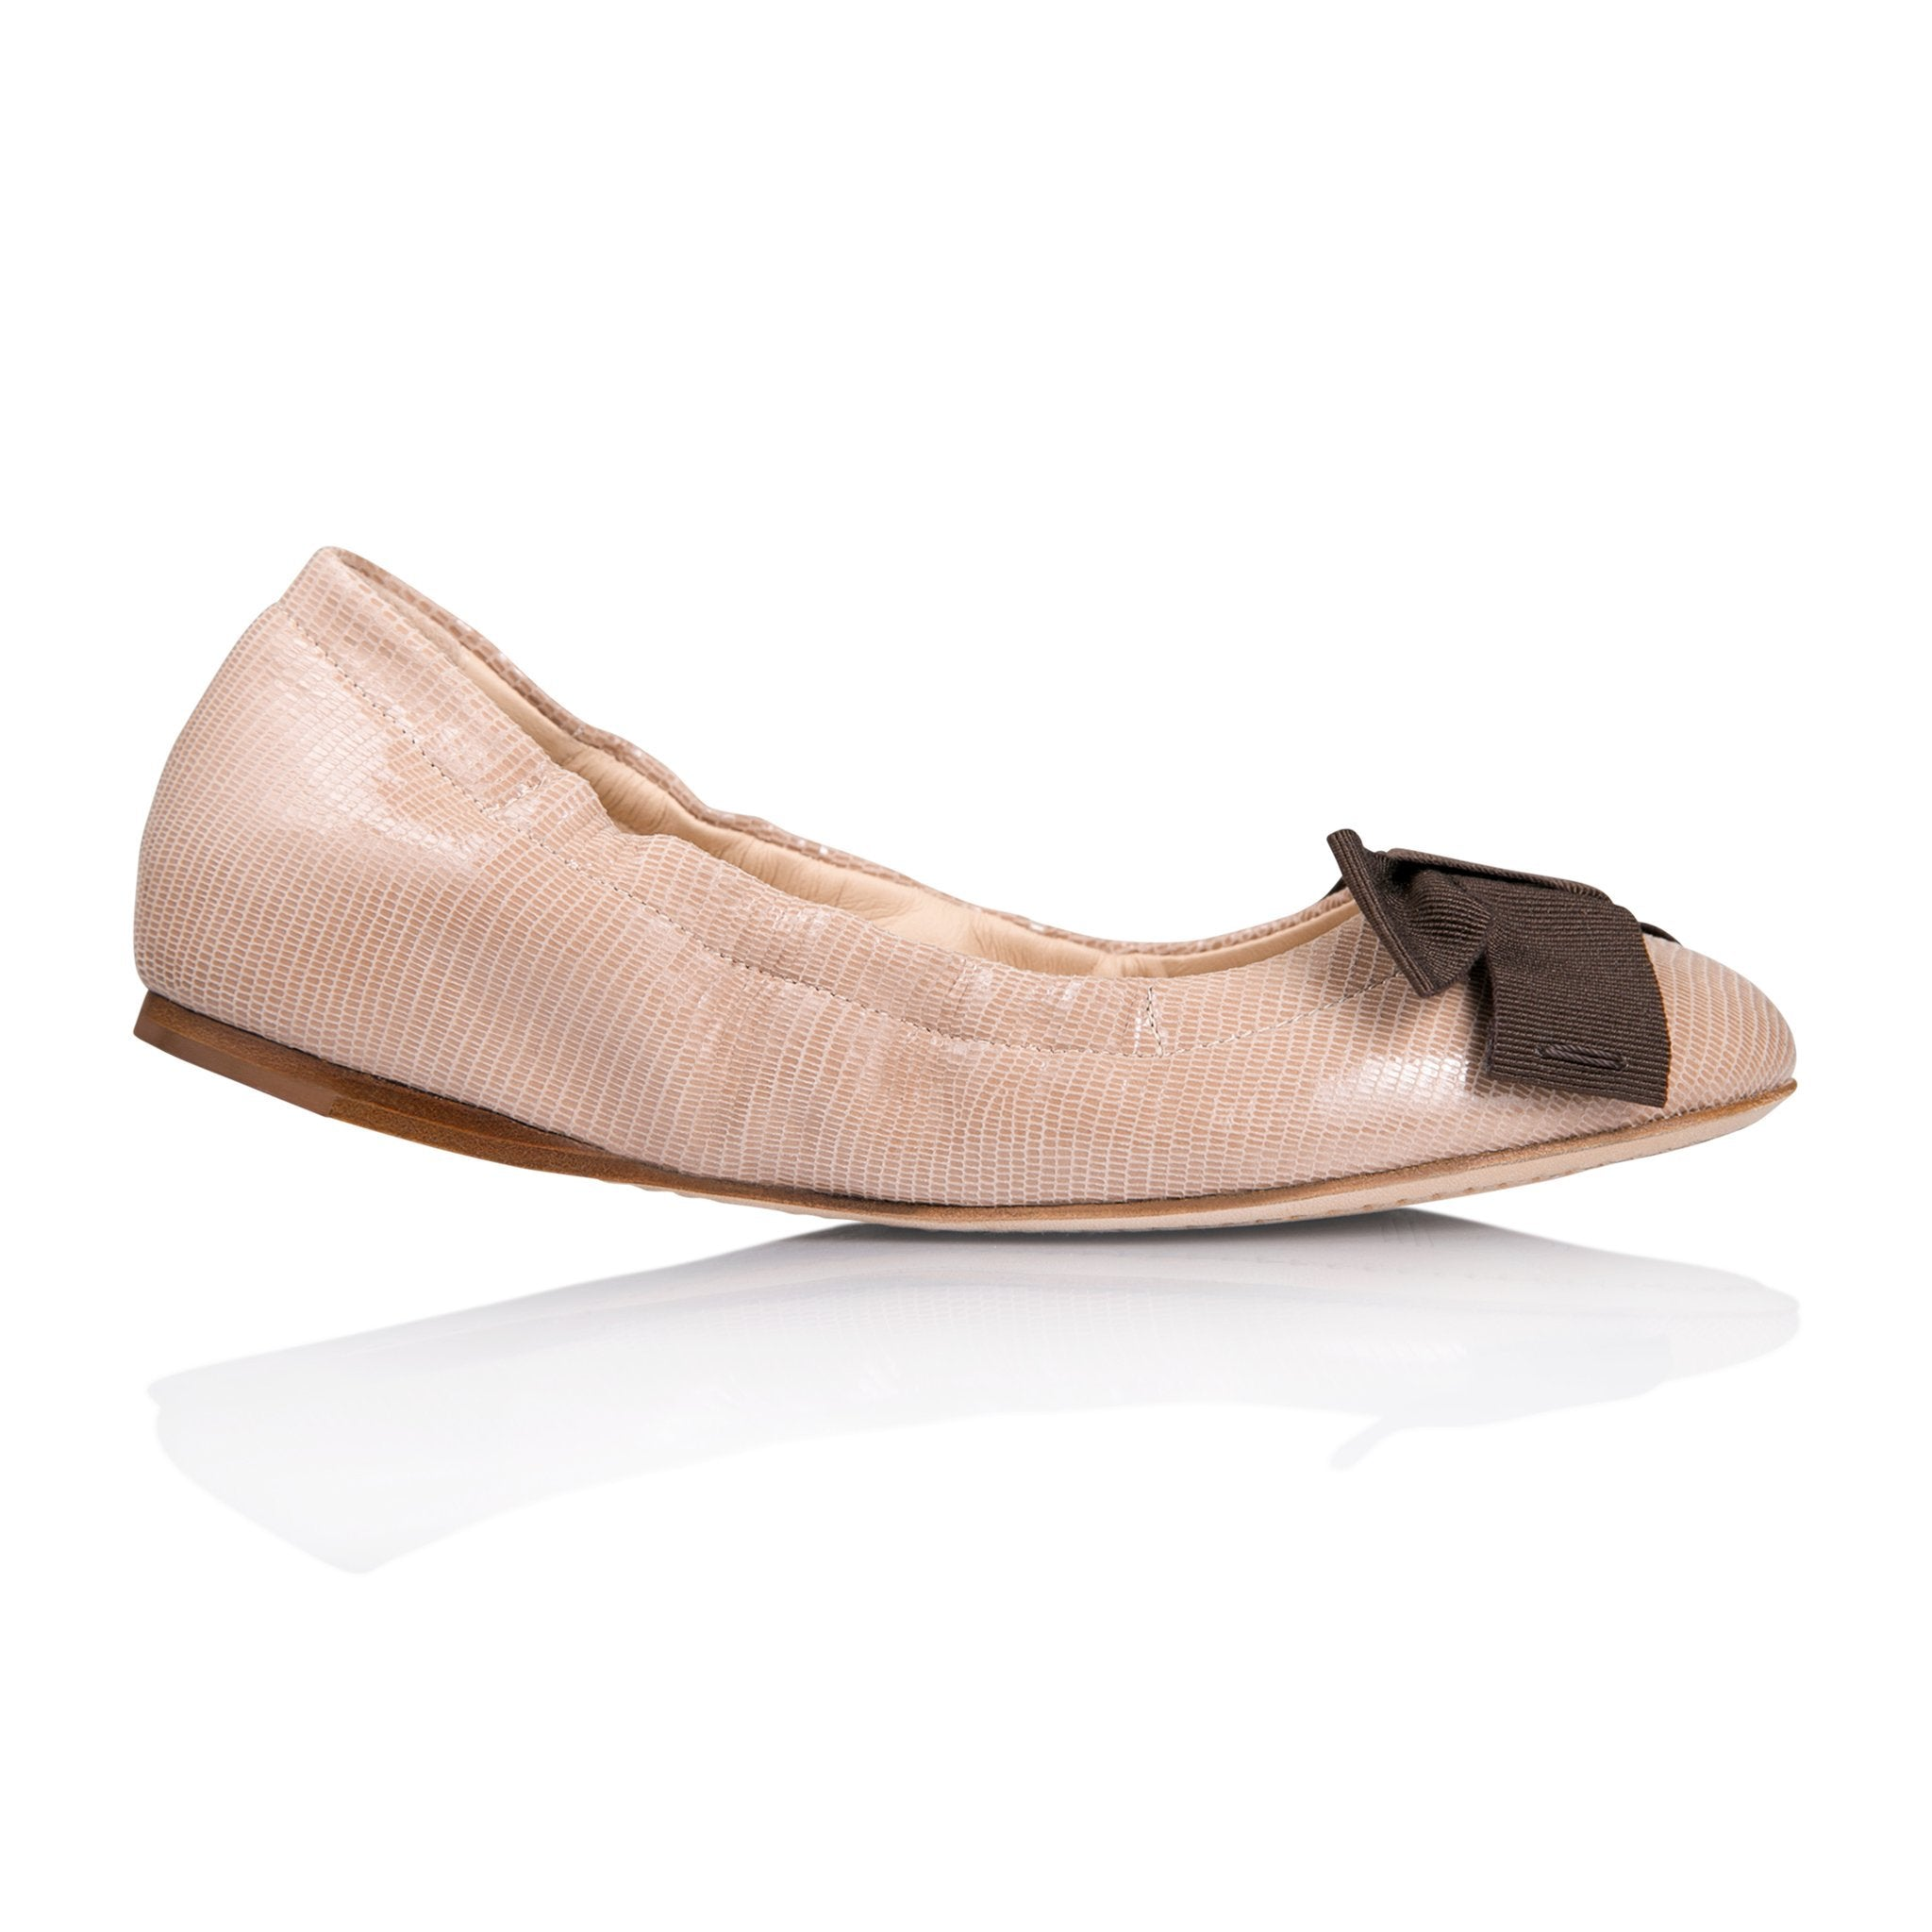 PORTOFINO - Varanus Tan + Grosgrain Espresso Bow, VIAJIYU - Women's Hand Made Sustainable Luxury Shoes. Made in Italy. Made to Order.